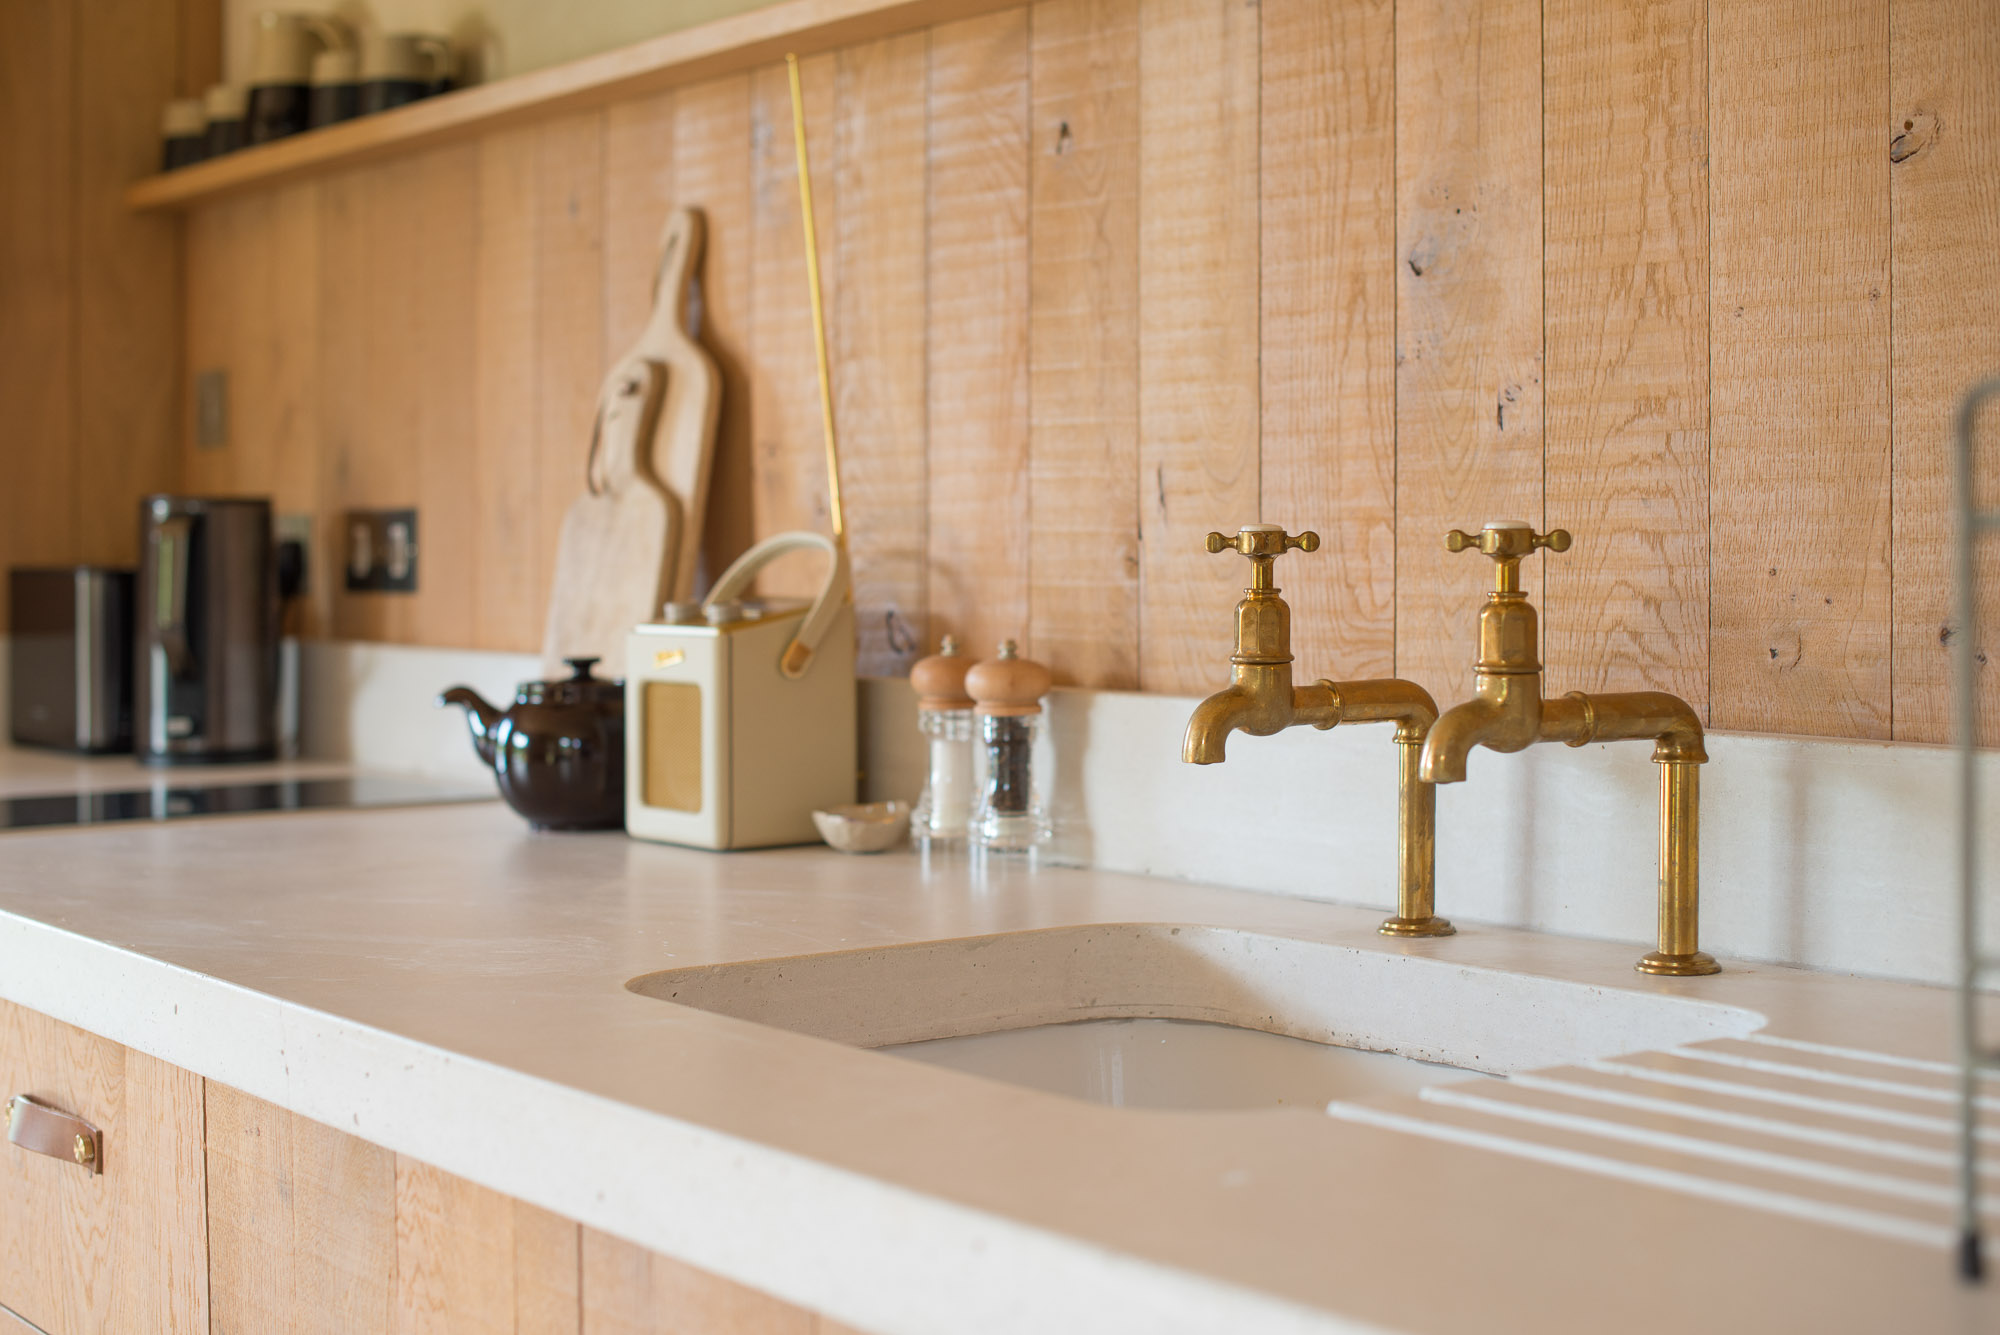 off-grid cabin interior, oak kitchen and concrete worktop, copper taps and digital radio